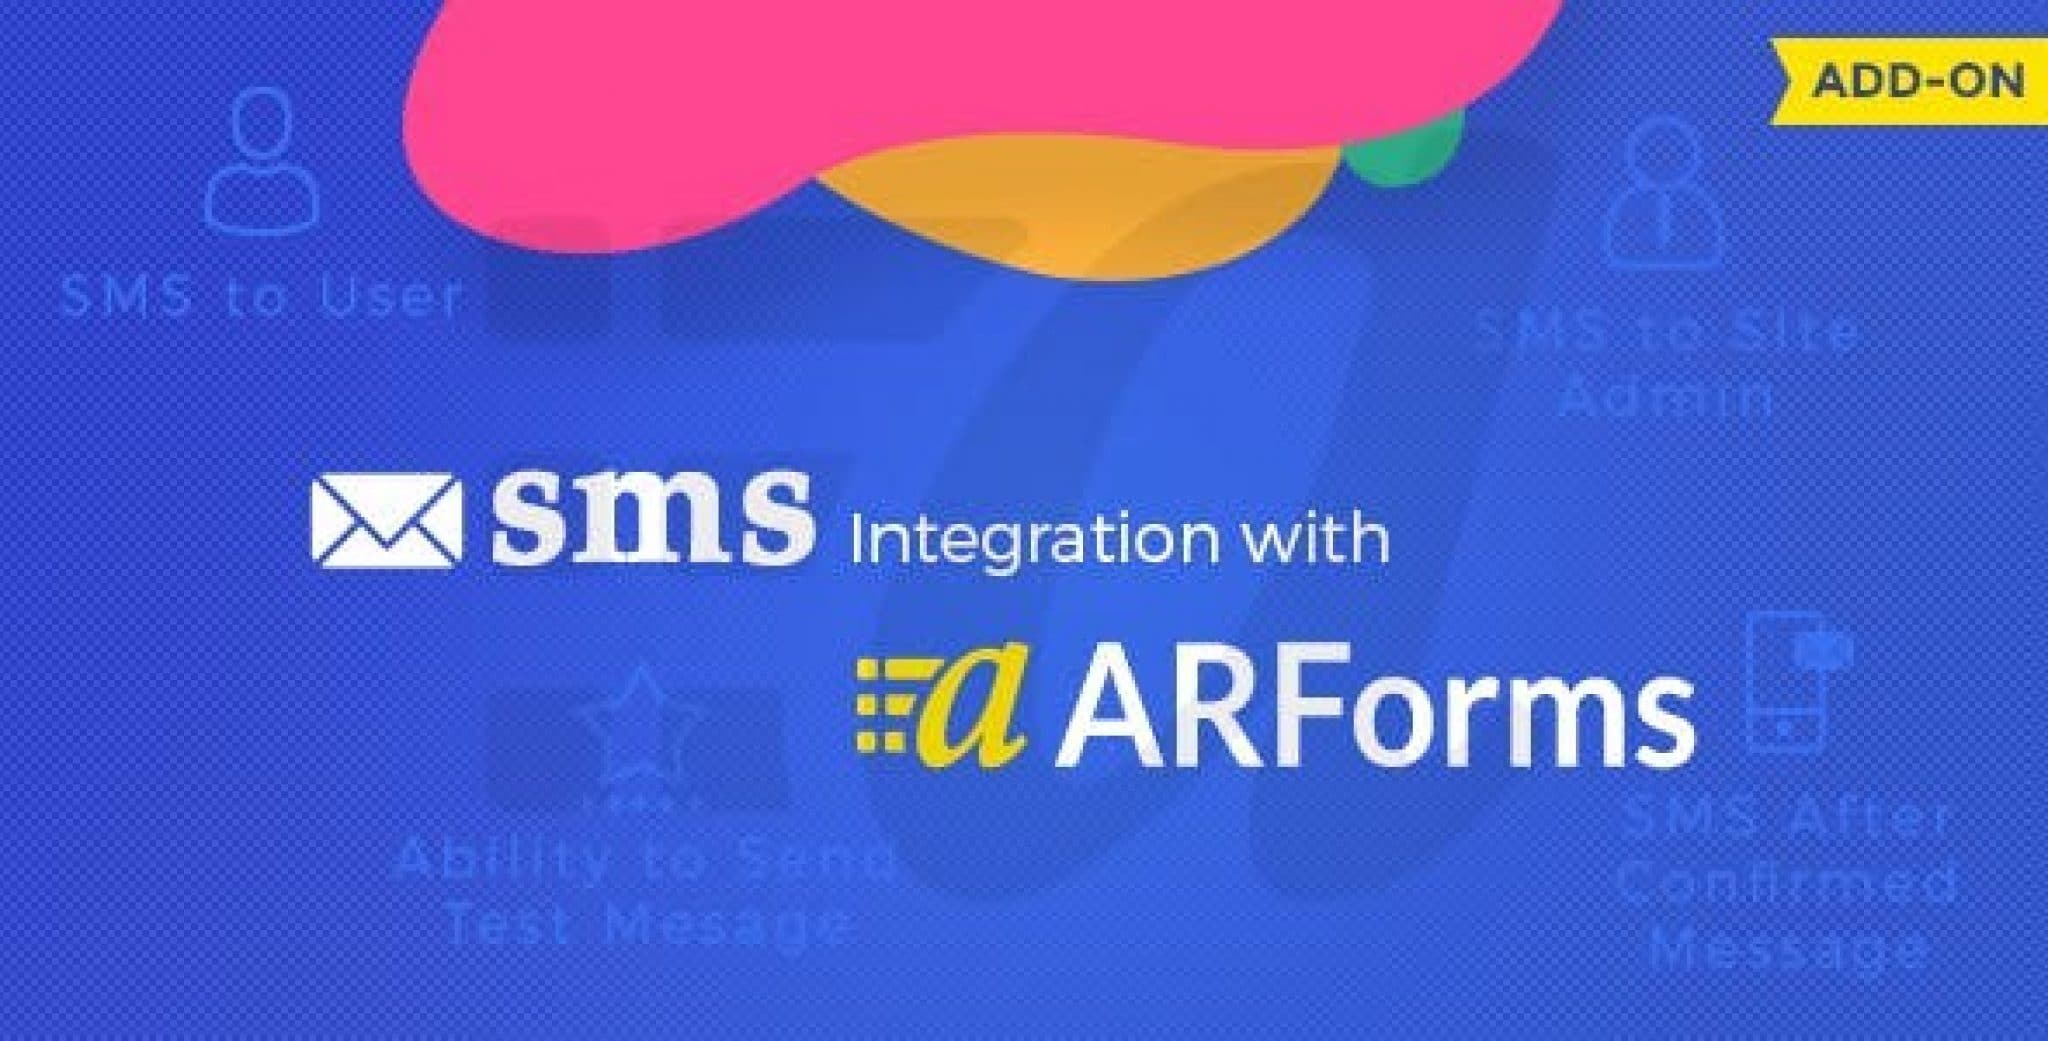 ARForms SMS Add-On